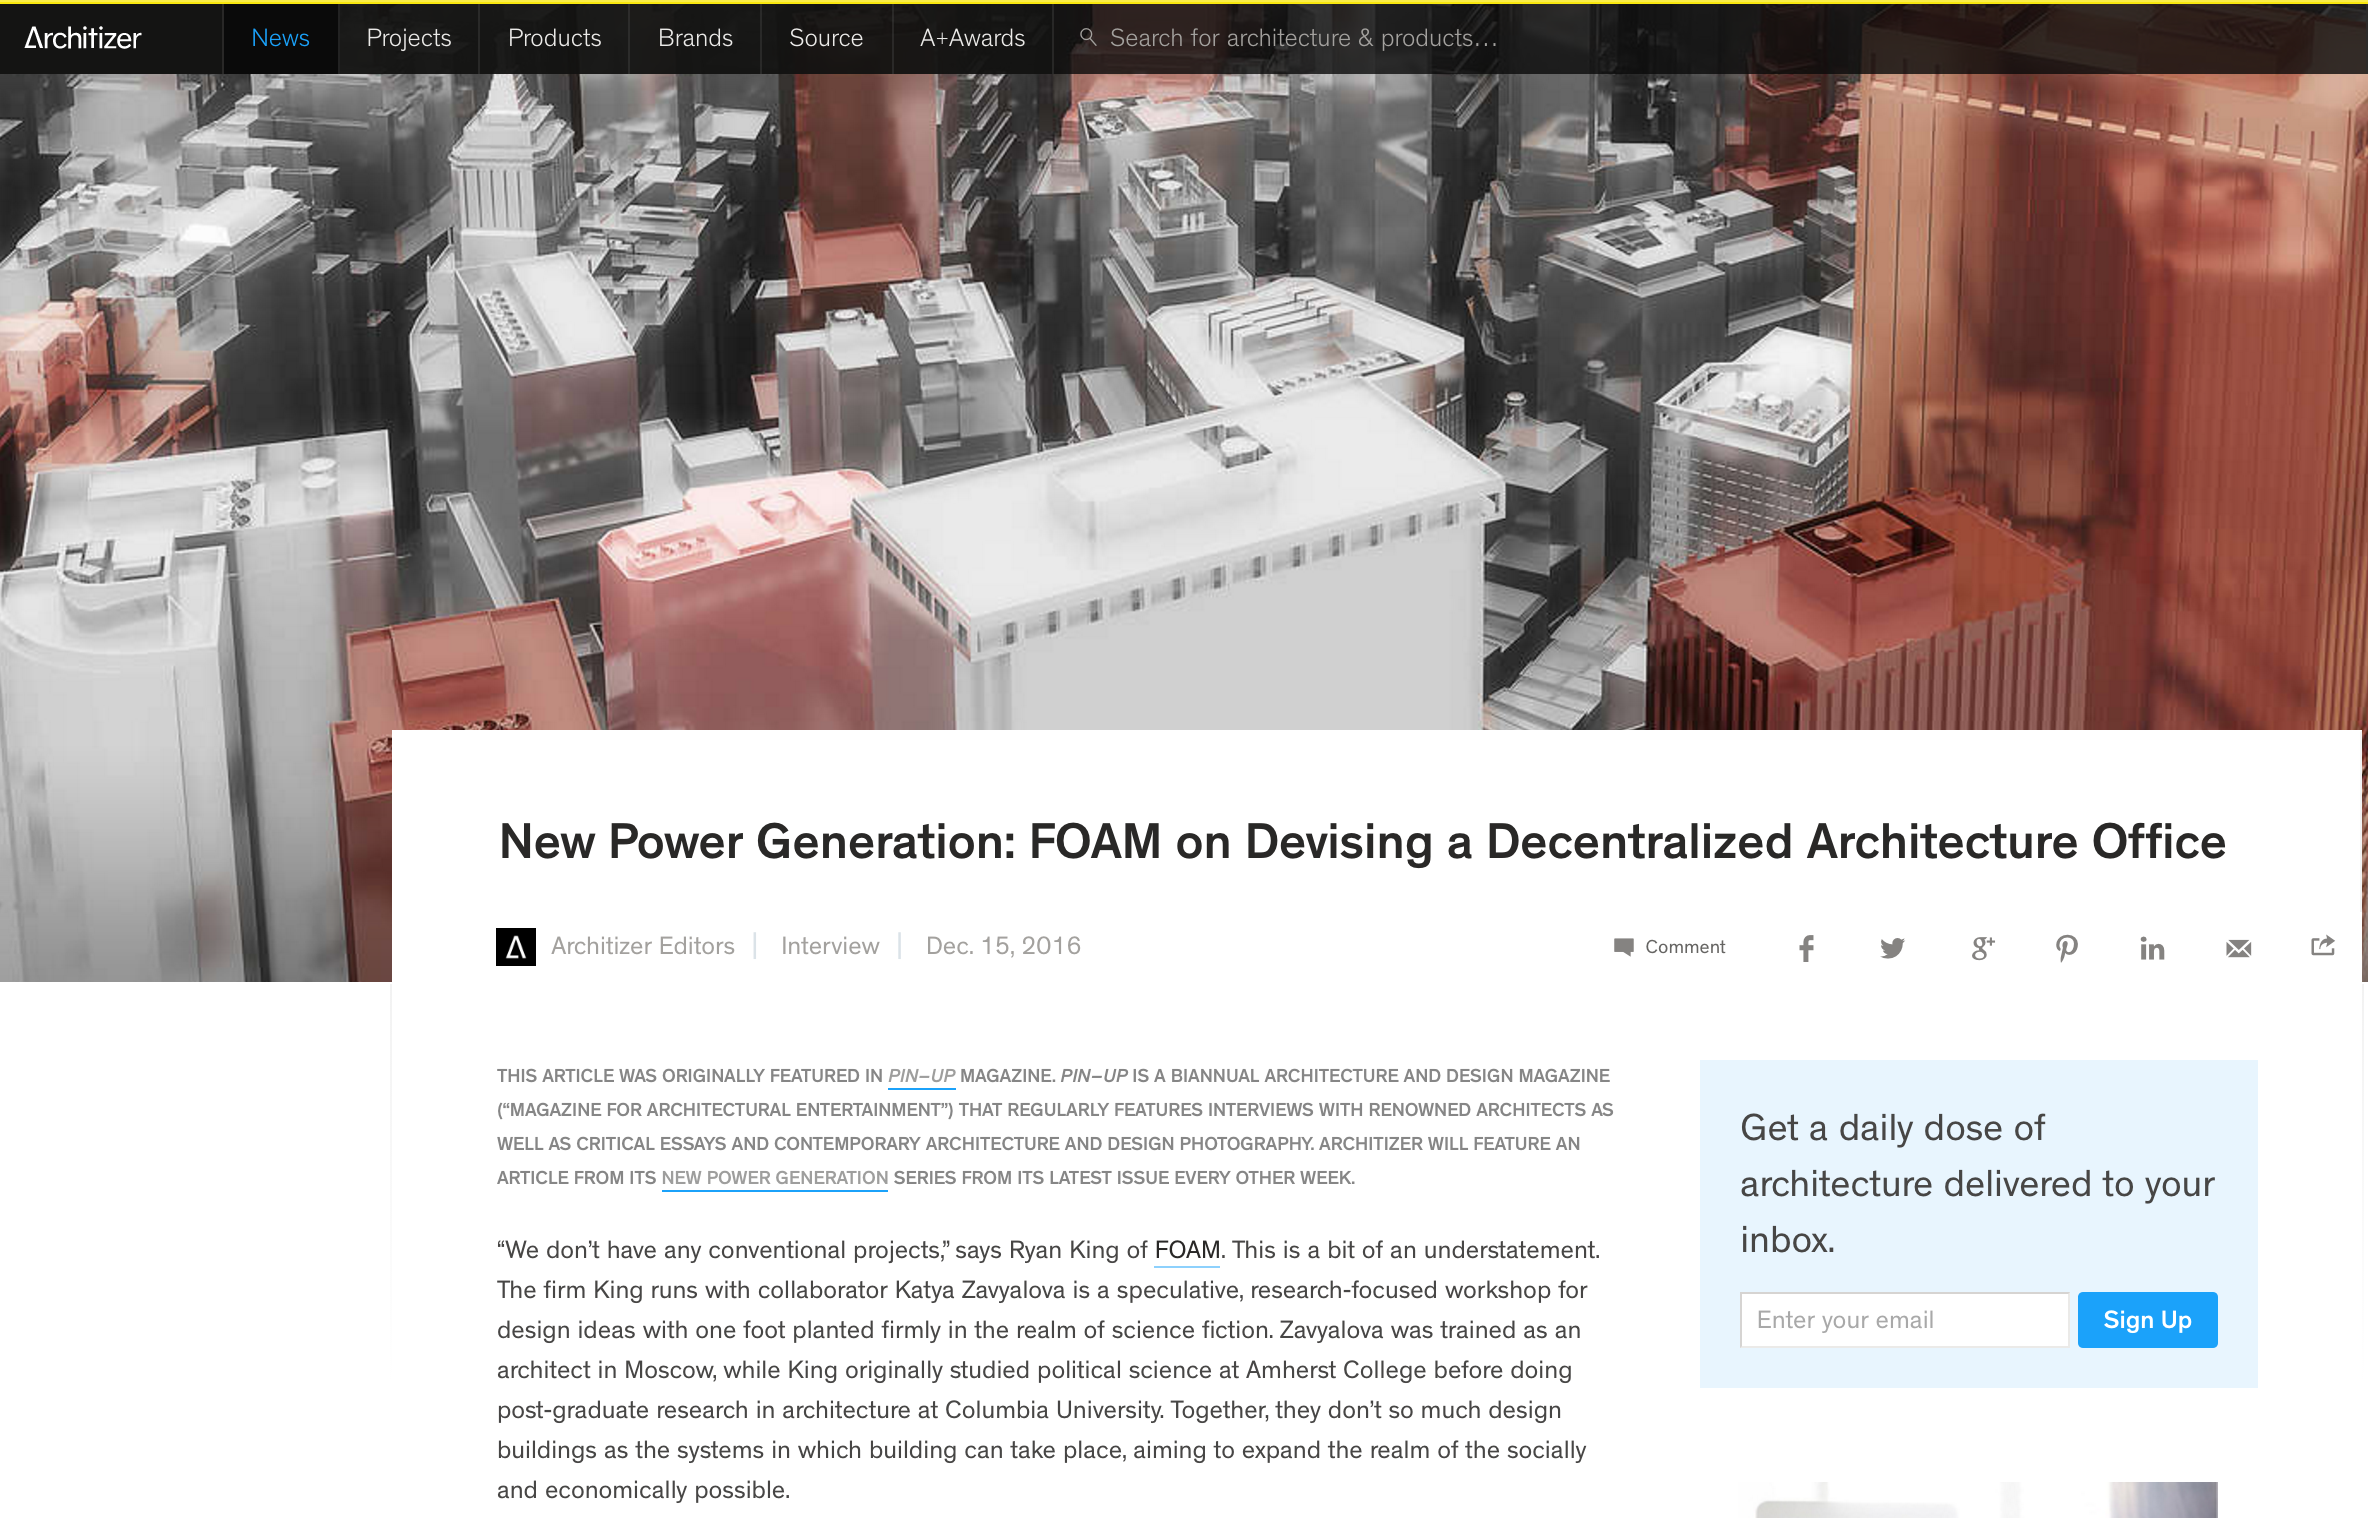 Architizer - New Power Generation: FOAM on Devising a Decentralized Architecture Office - December 2016